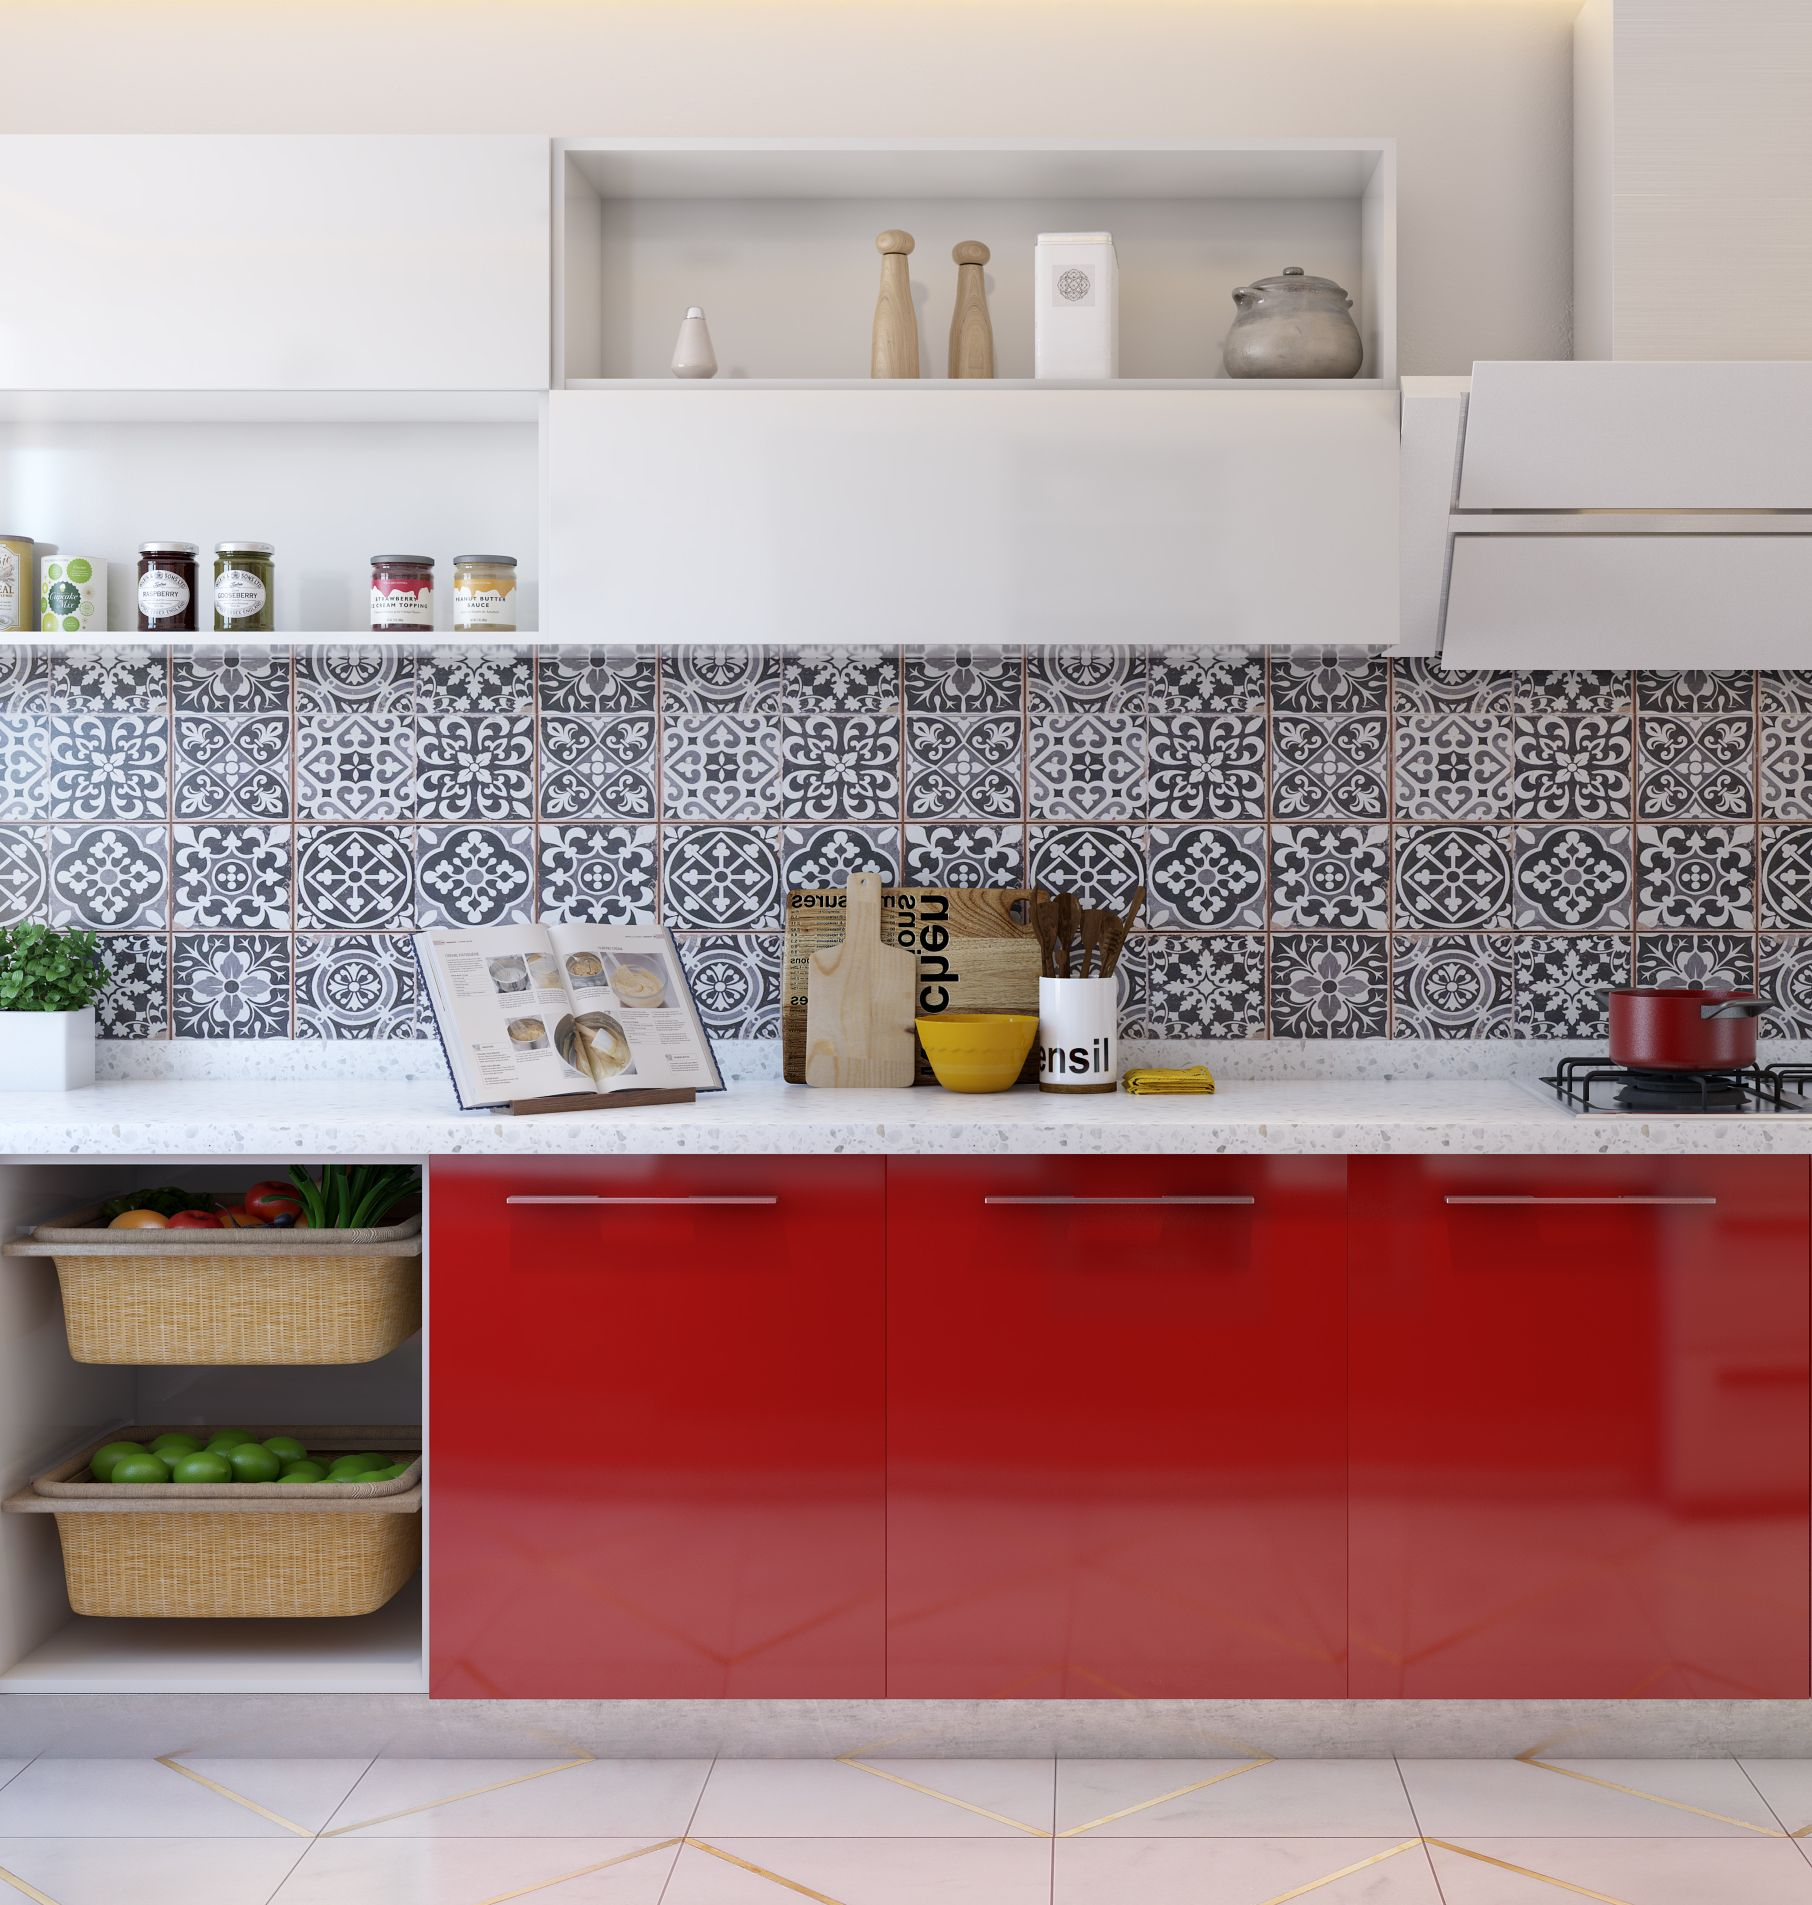 We Just Can T Get Enough Of Patterned Tiles As Backsplashes Isn T